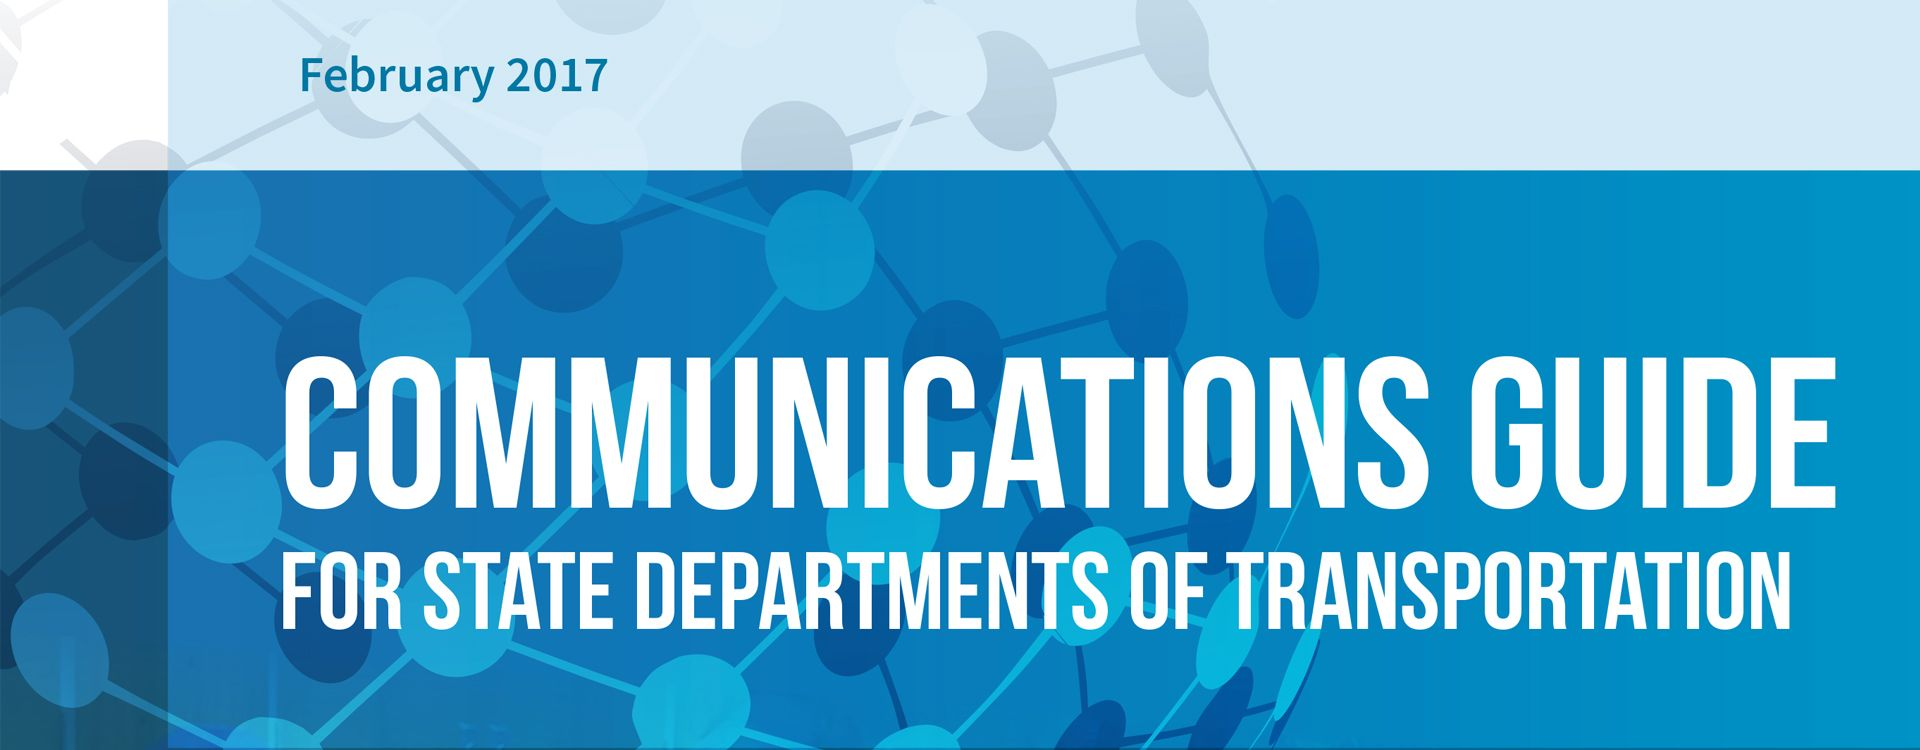 bnr-communications-guide-state-departments-transportation